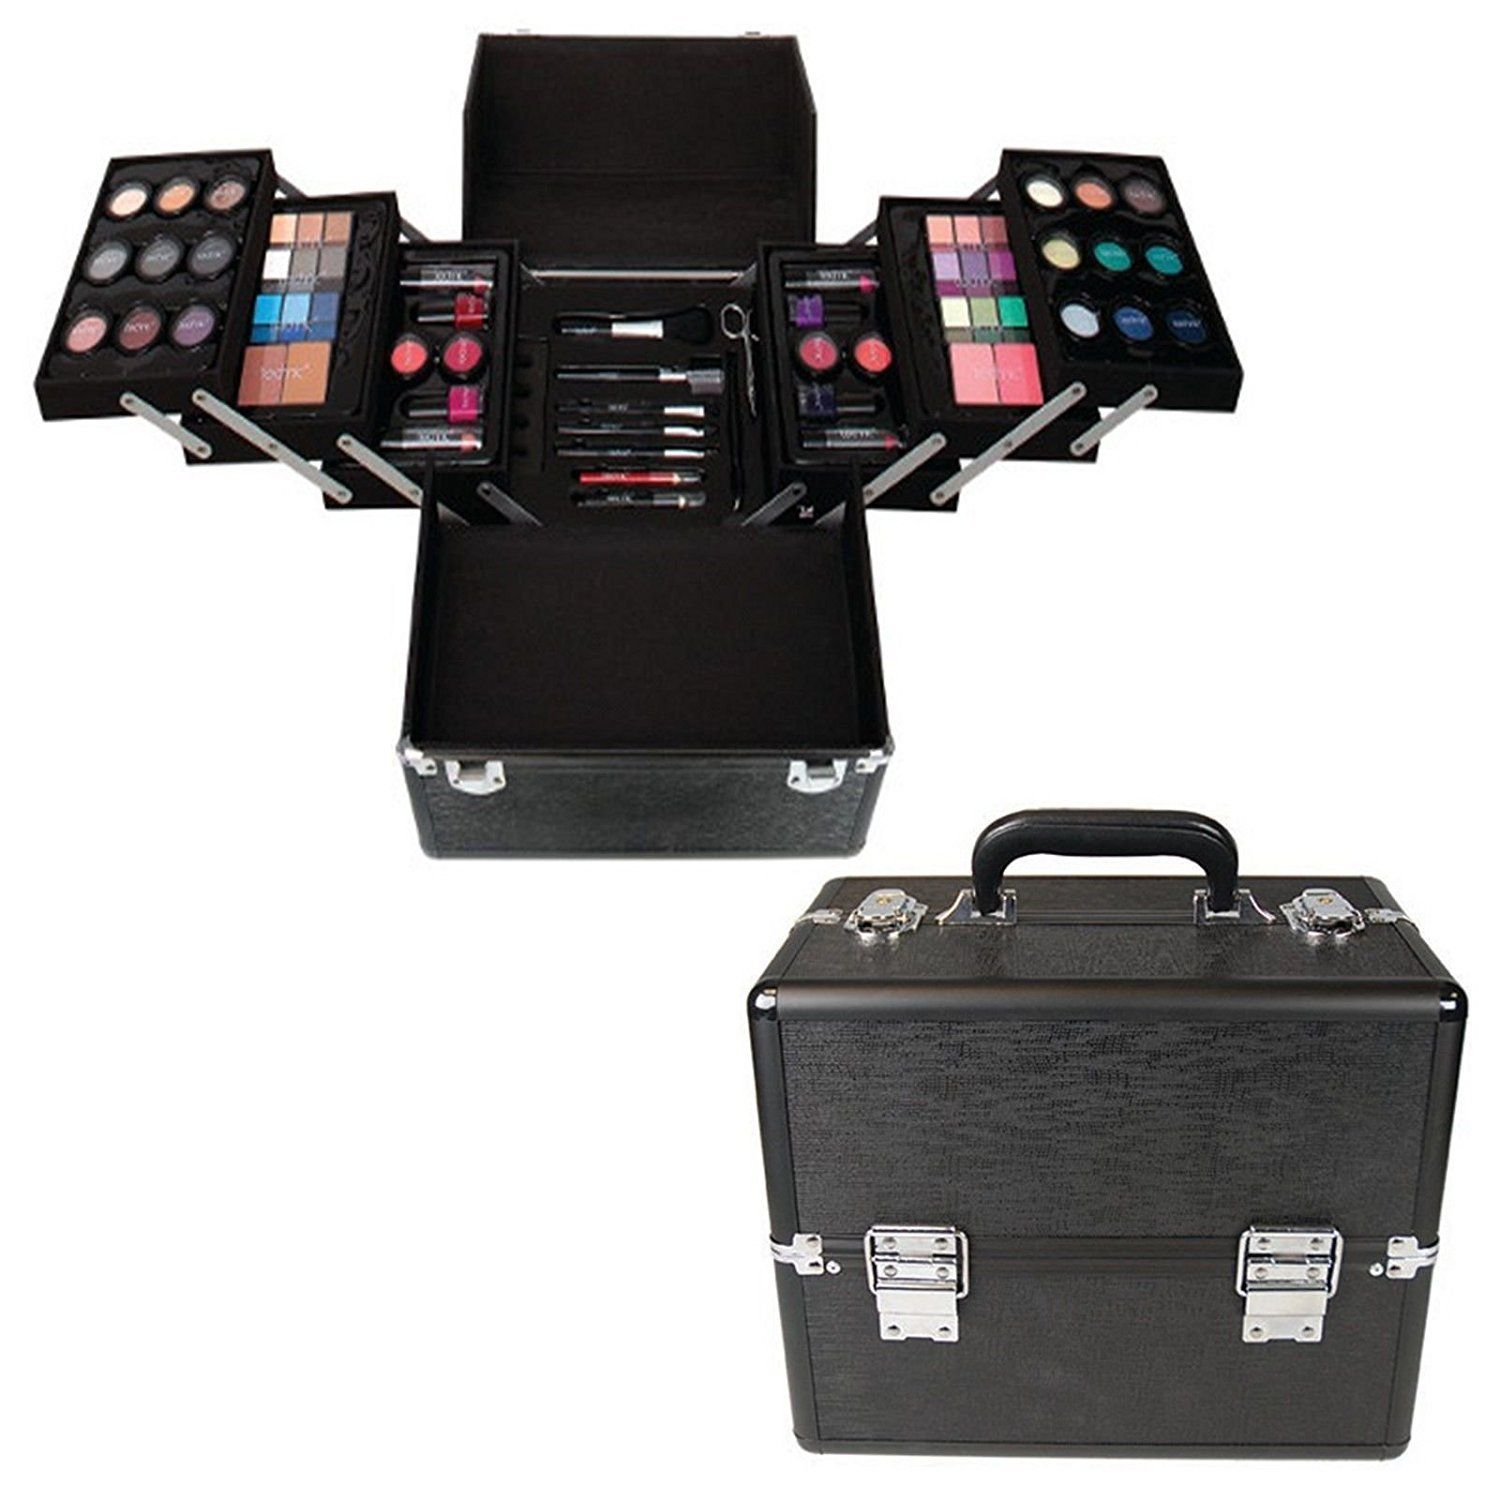 Technic Black Large Professional Beauty and Make Up Case